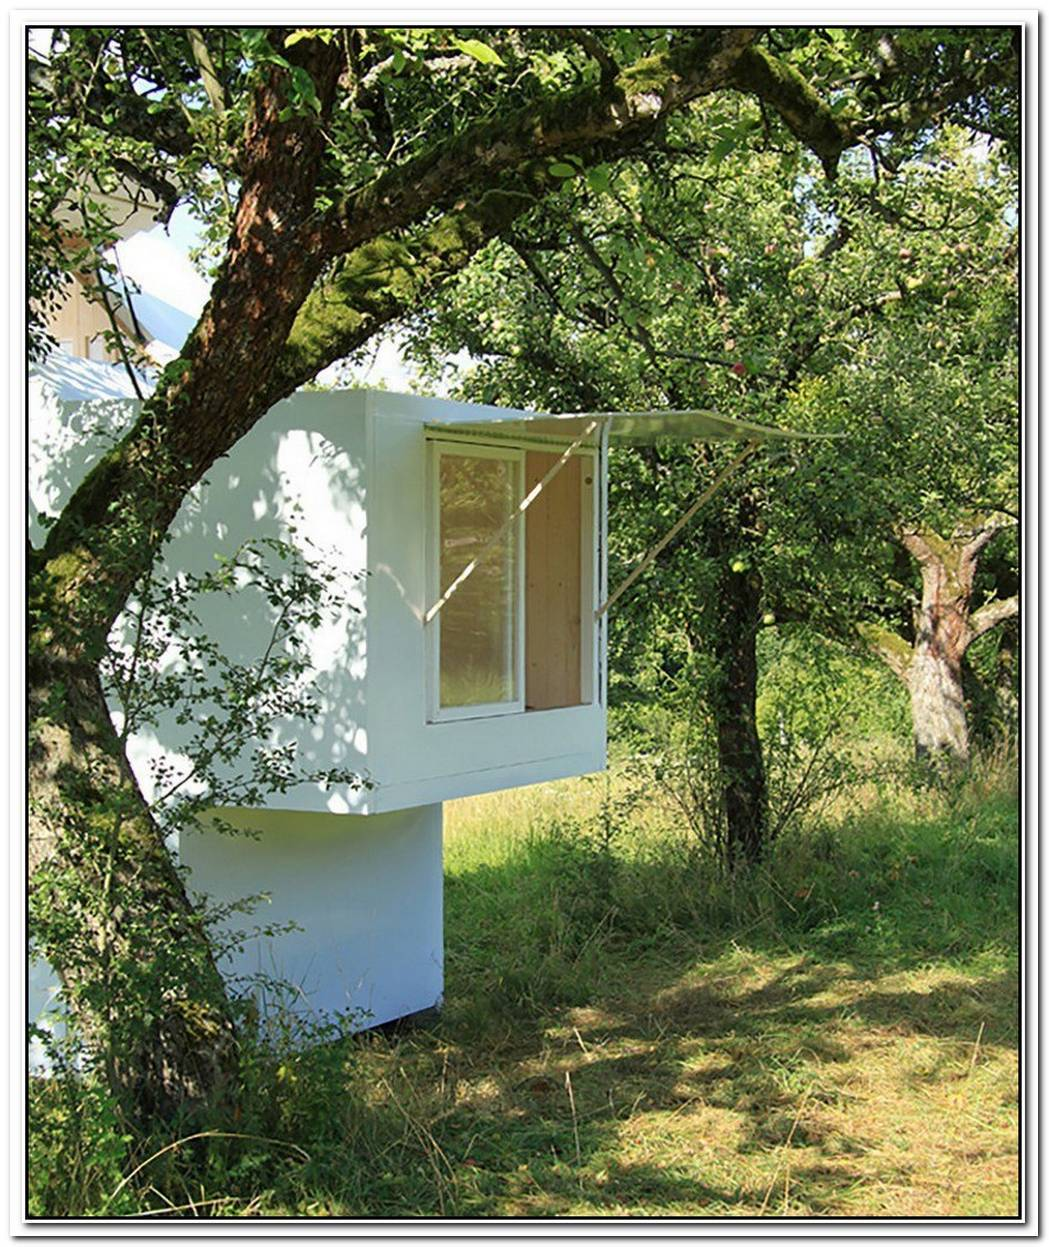 A Tiny Meditation Shelter That Puts You In Touch With Your Surroundings